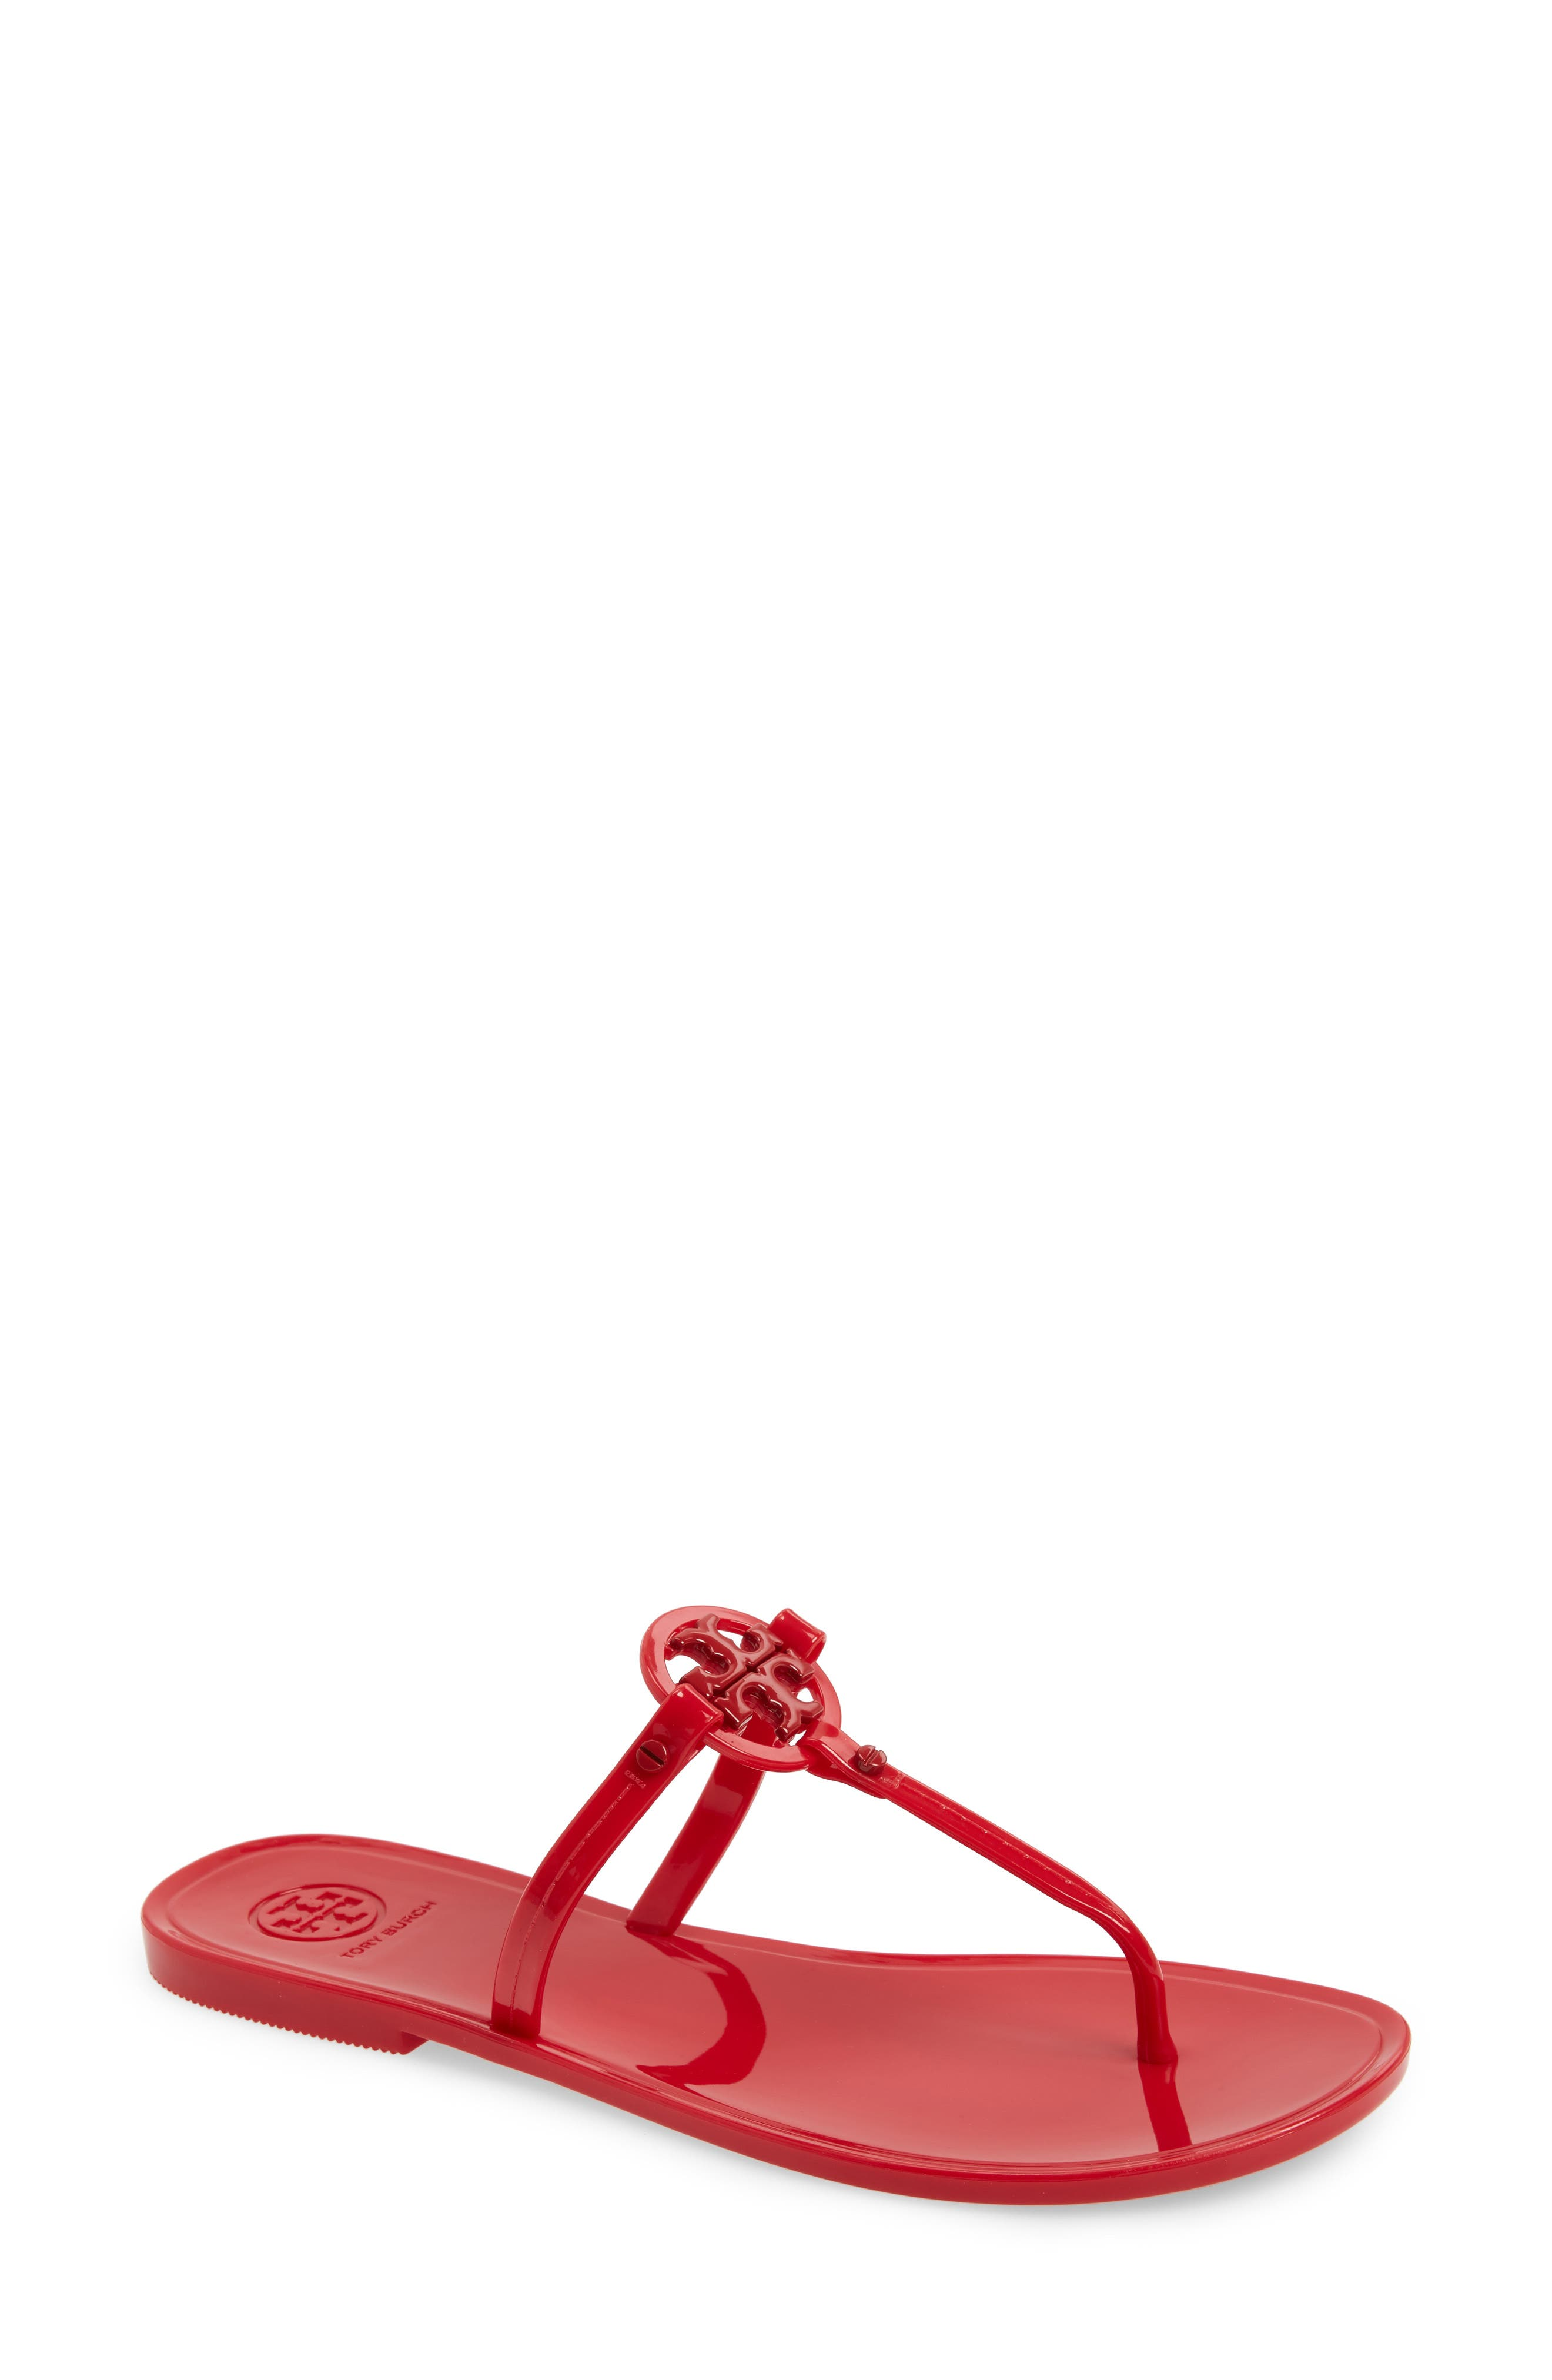 TORY BURCH,                             'Mini Miller' Flat Sandal,                             Main thumbnail 1, color,                             RED